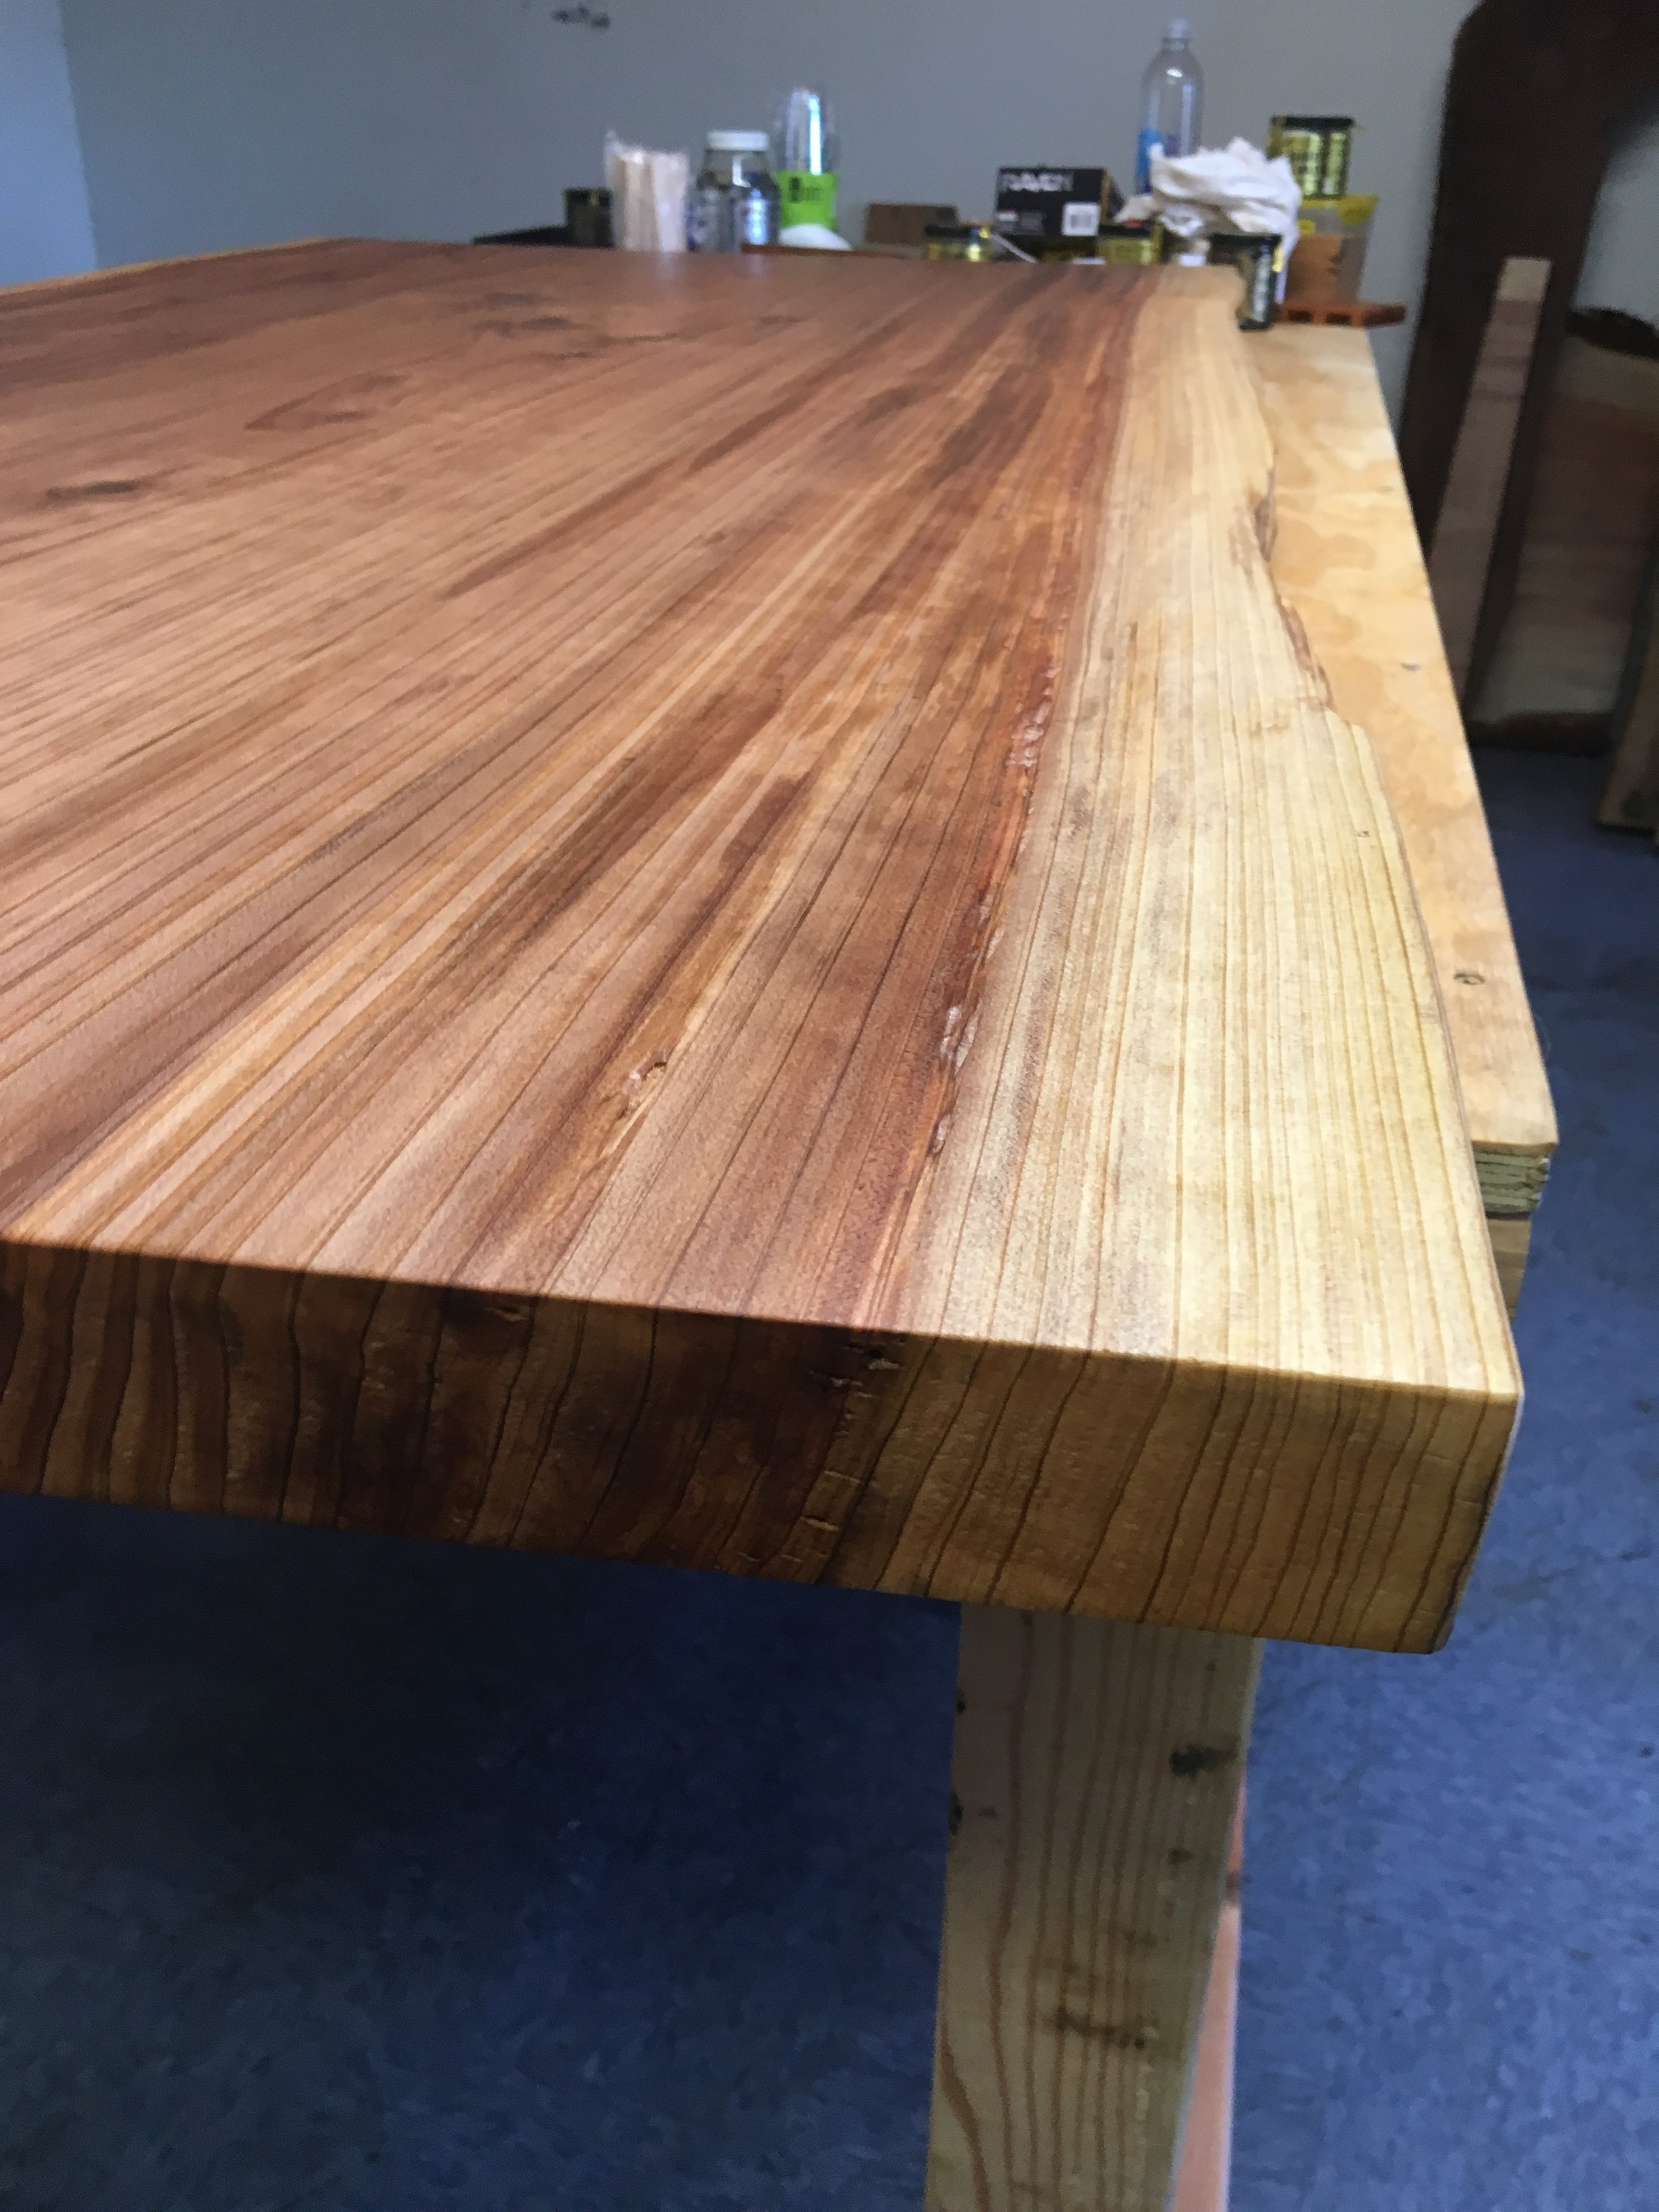 redwood dining table ready for it's new home in the mission